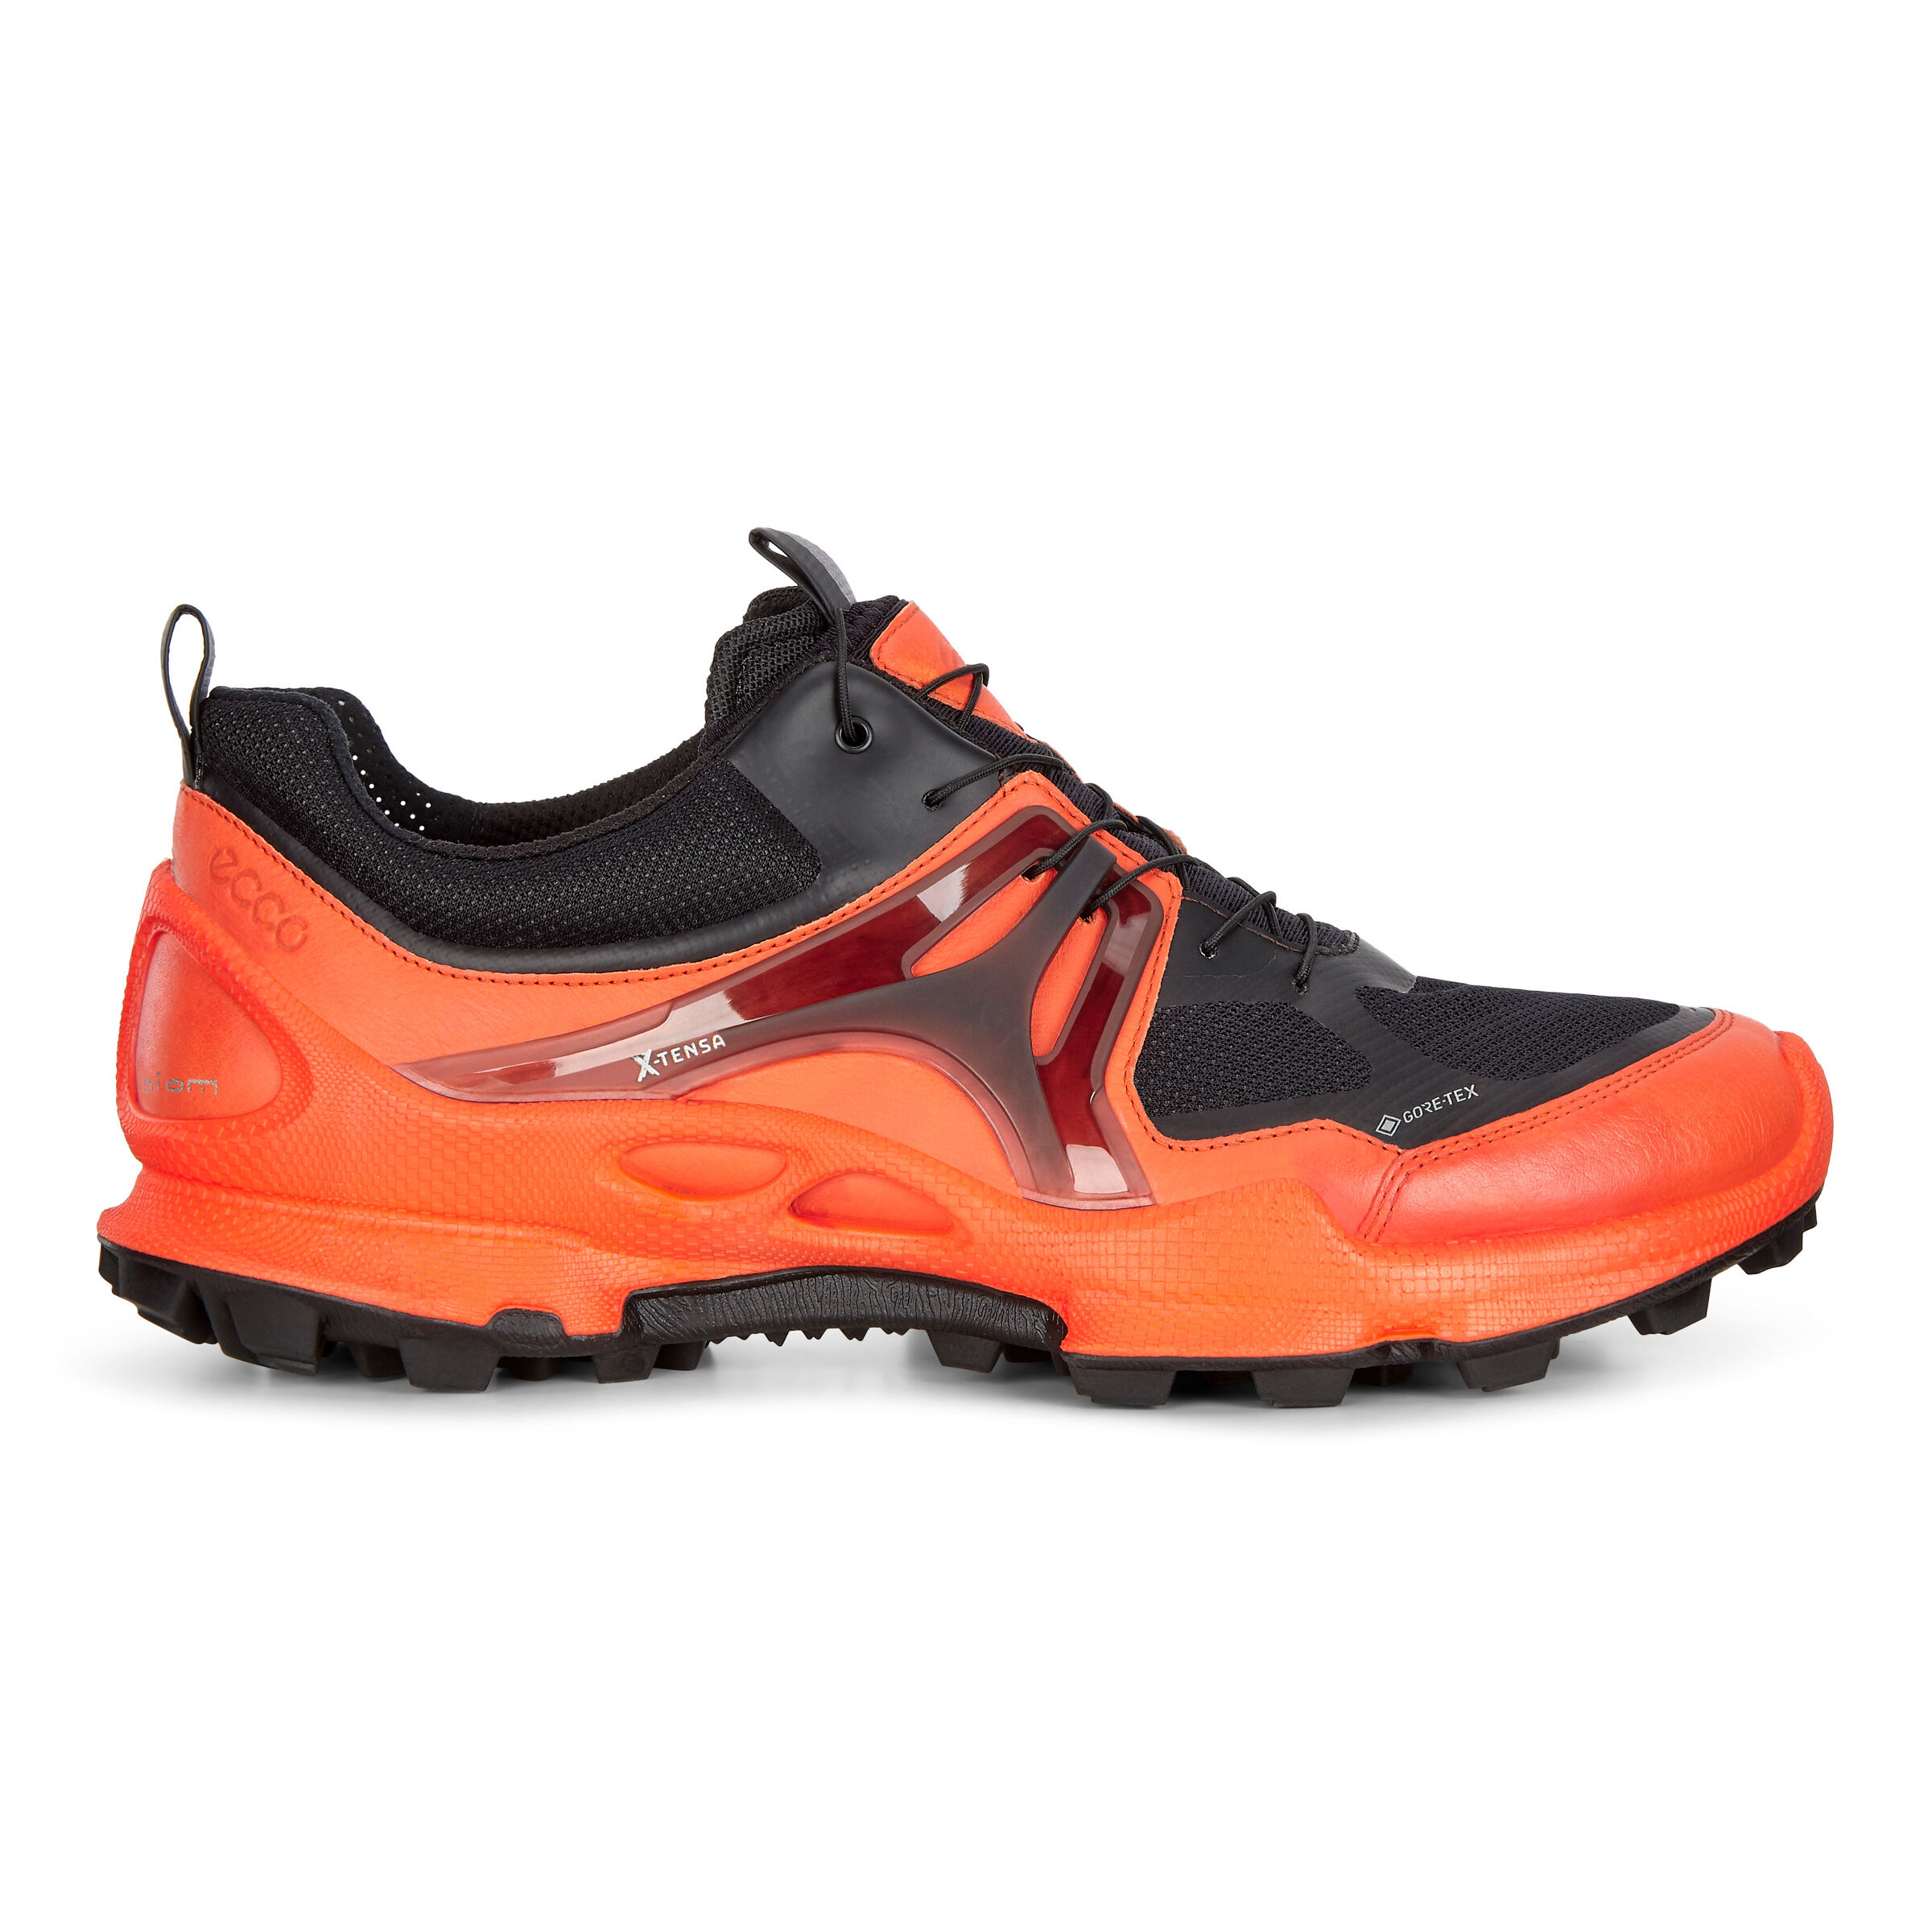 ECCO BIOM C-trail Mens Low GTX Shoes Sneakers Size 10/10.5 Fire